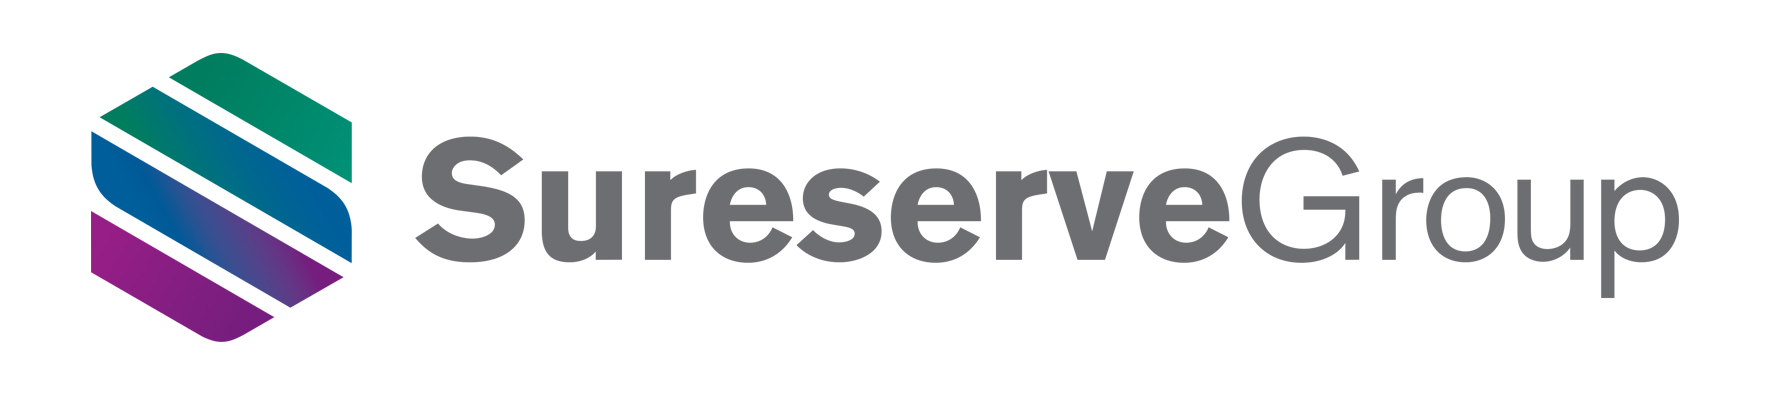 Sureserve Group Plc